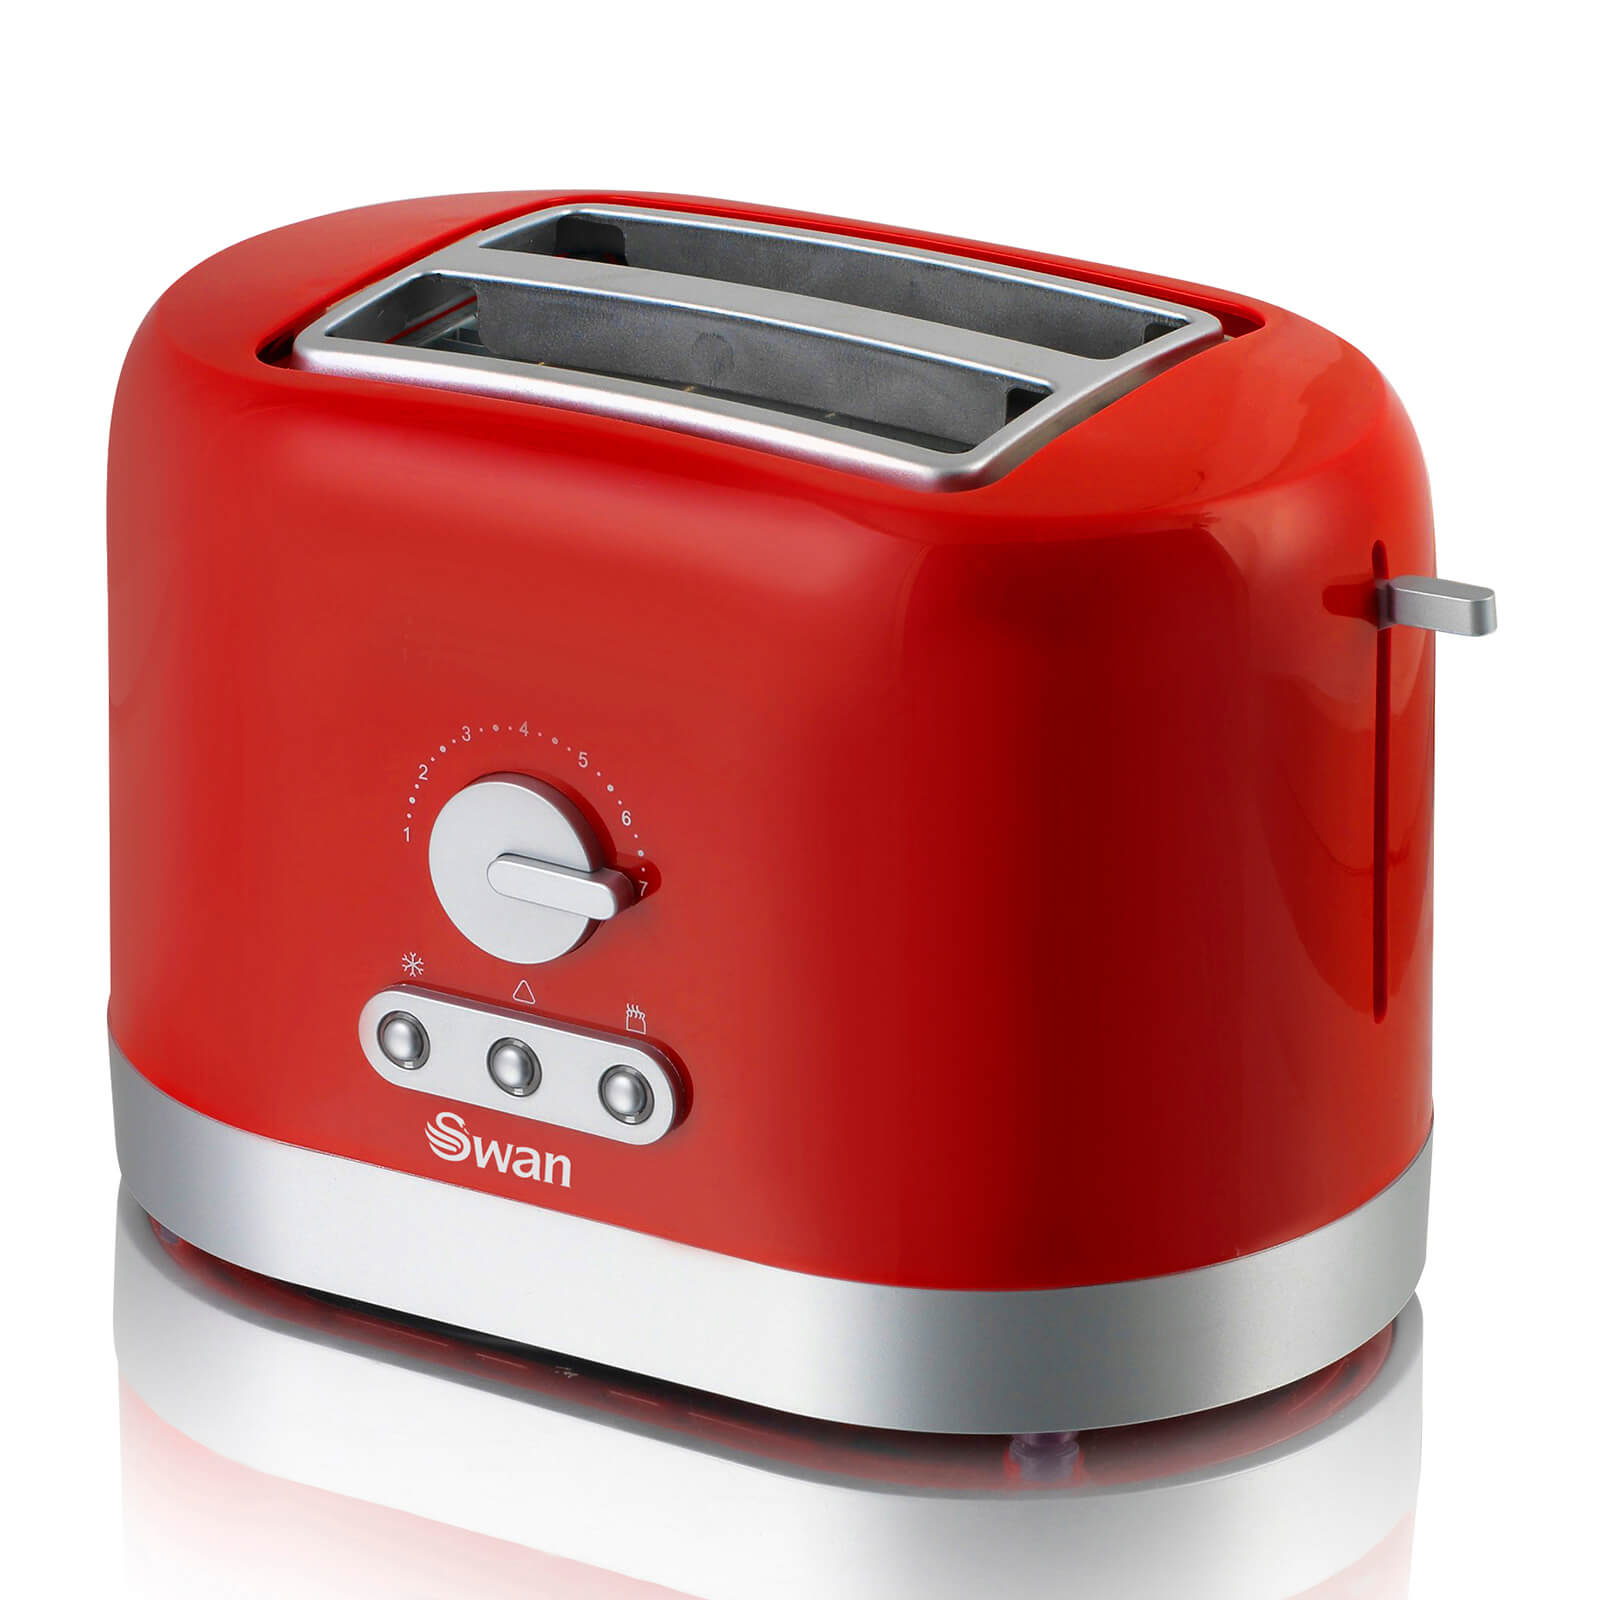 Swan ST10020RedN 2 Slice Toaster - Red